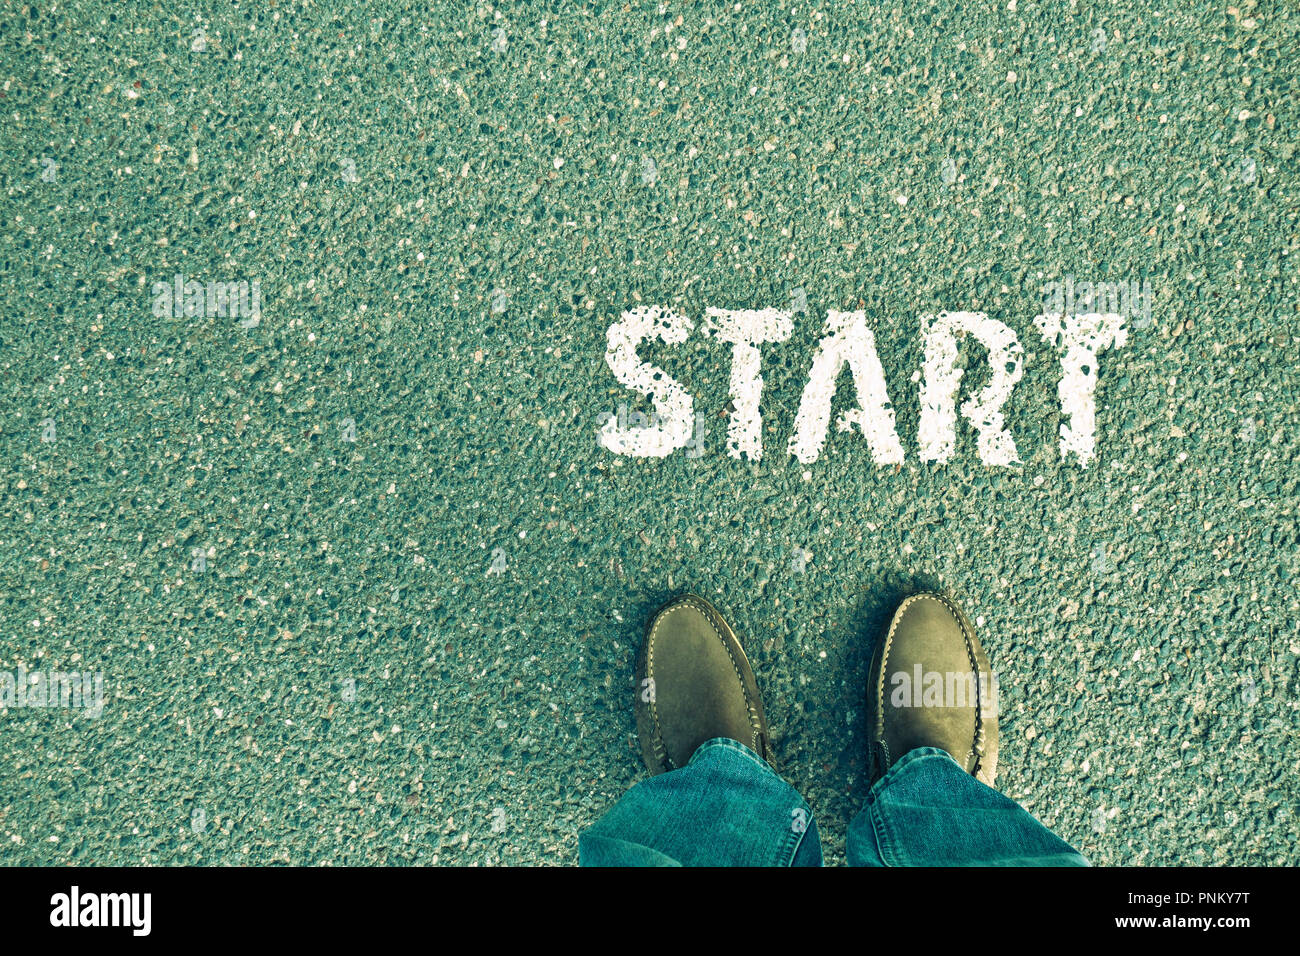 feet and legs of a man standing near the word START, conceptual image for a new beginning or competition in business - Stock Image